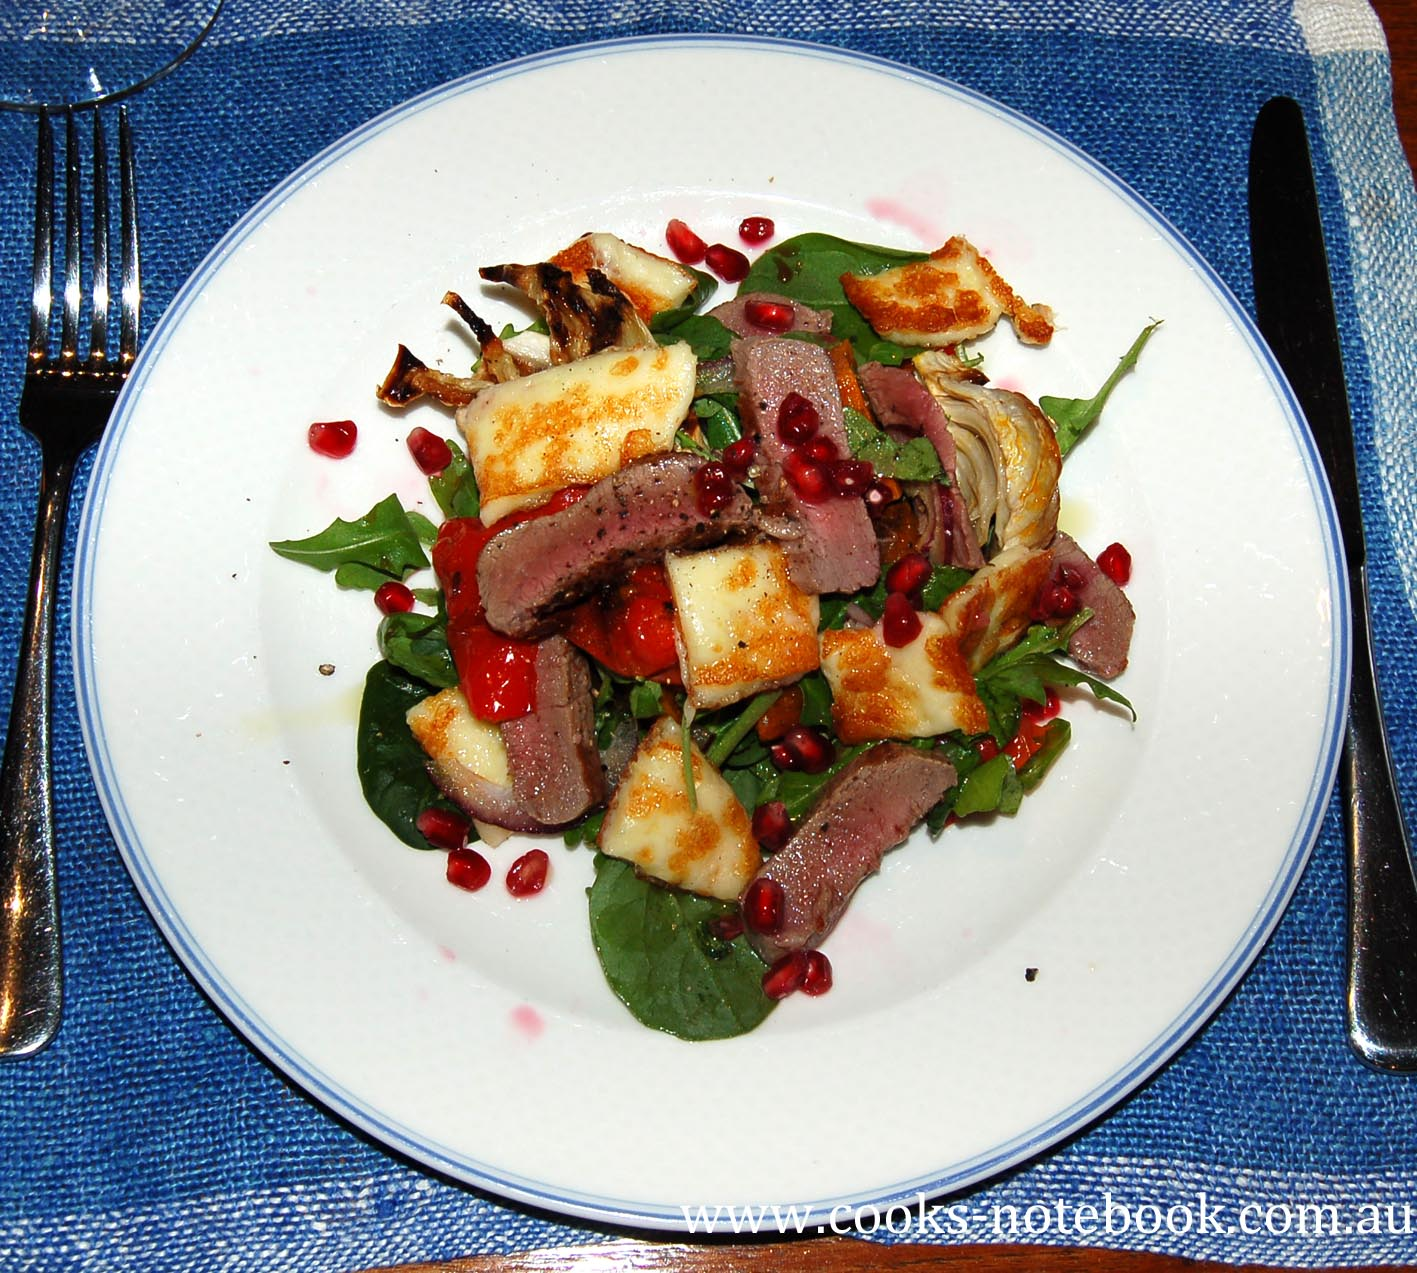 A winter salad – roast veggies, lamb and haloumi